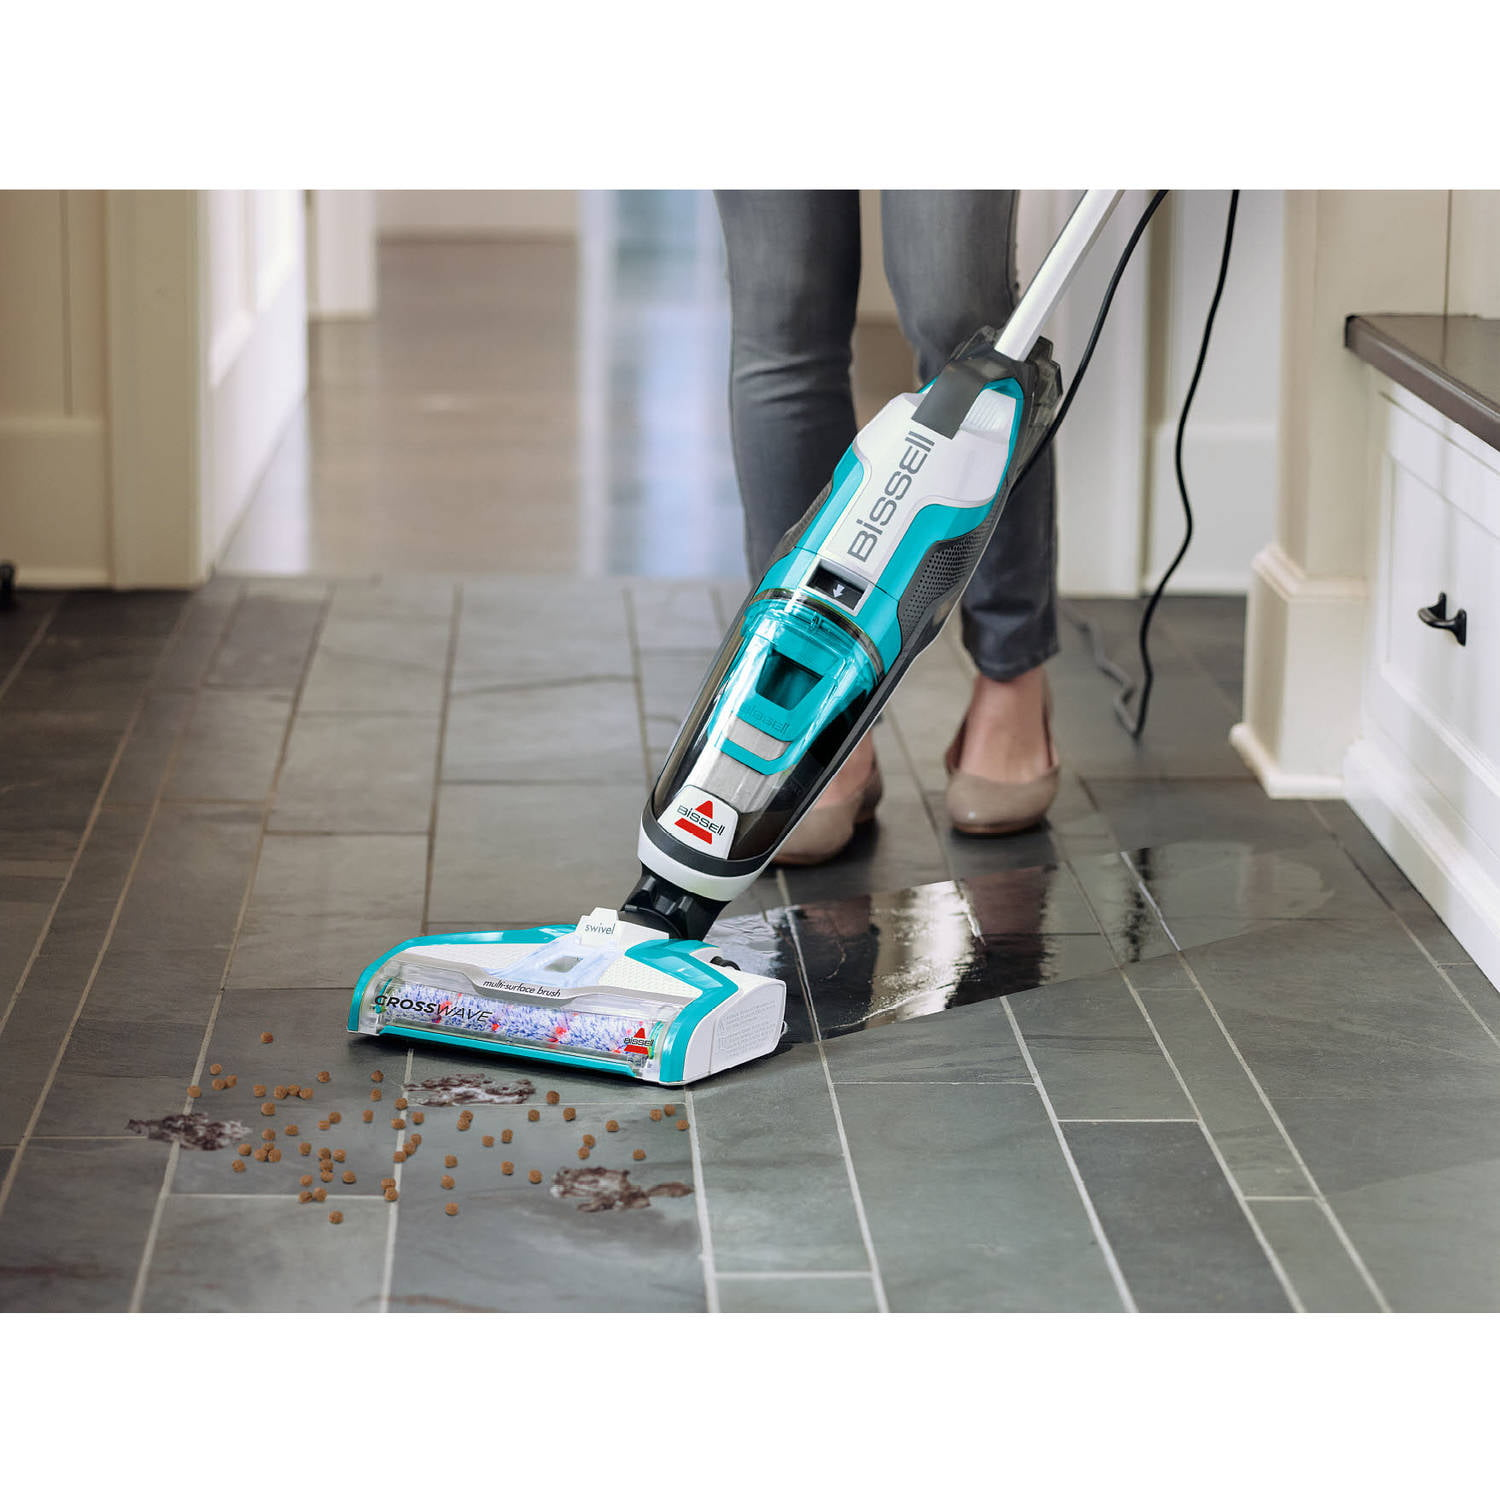 Bissell crosswave all in one multi surface wet dry vac 1785w bissell crosswave all in one multi surface wet dry vac 1785w walmart dailygadgetfo Gallery